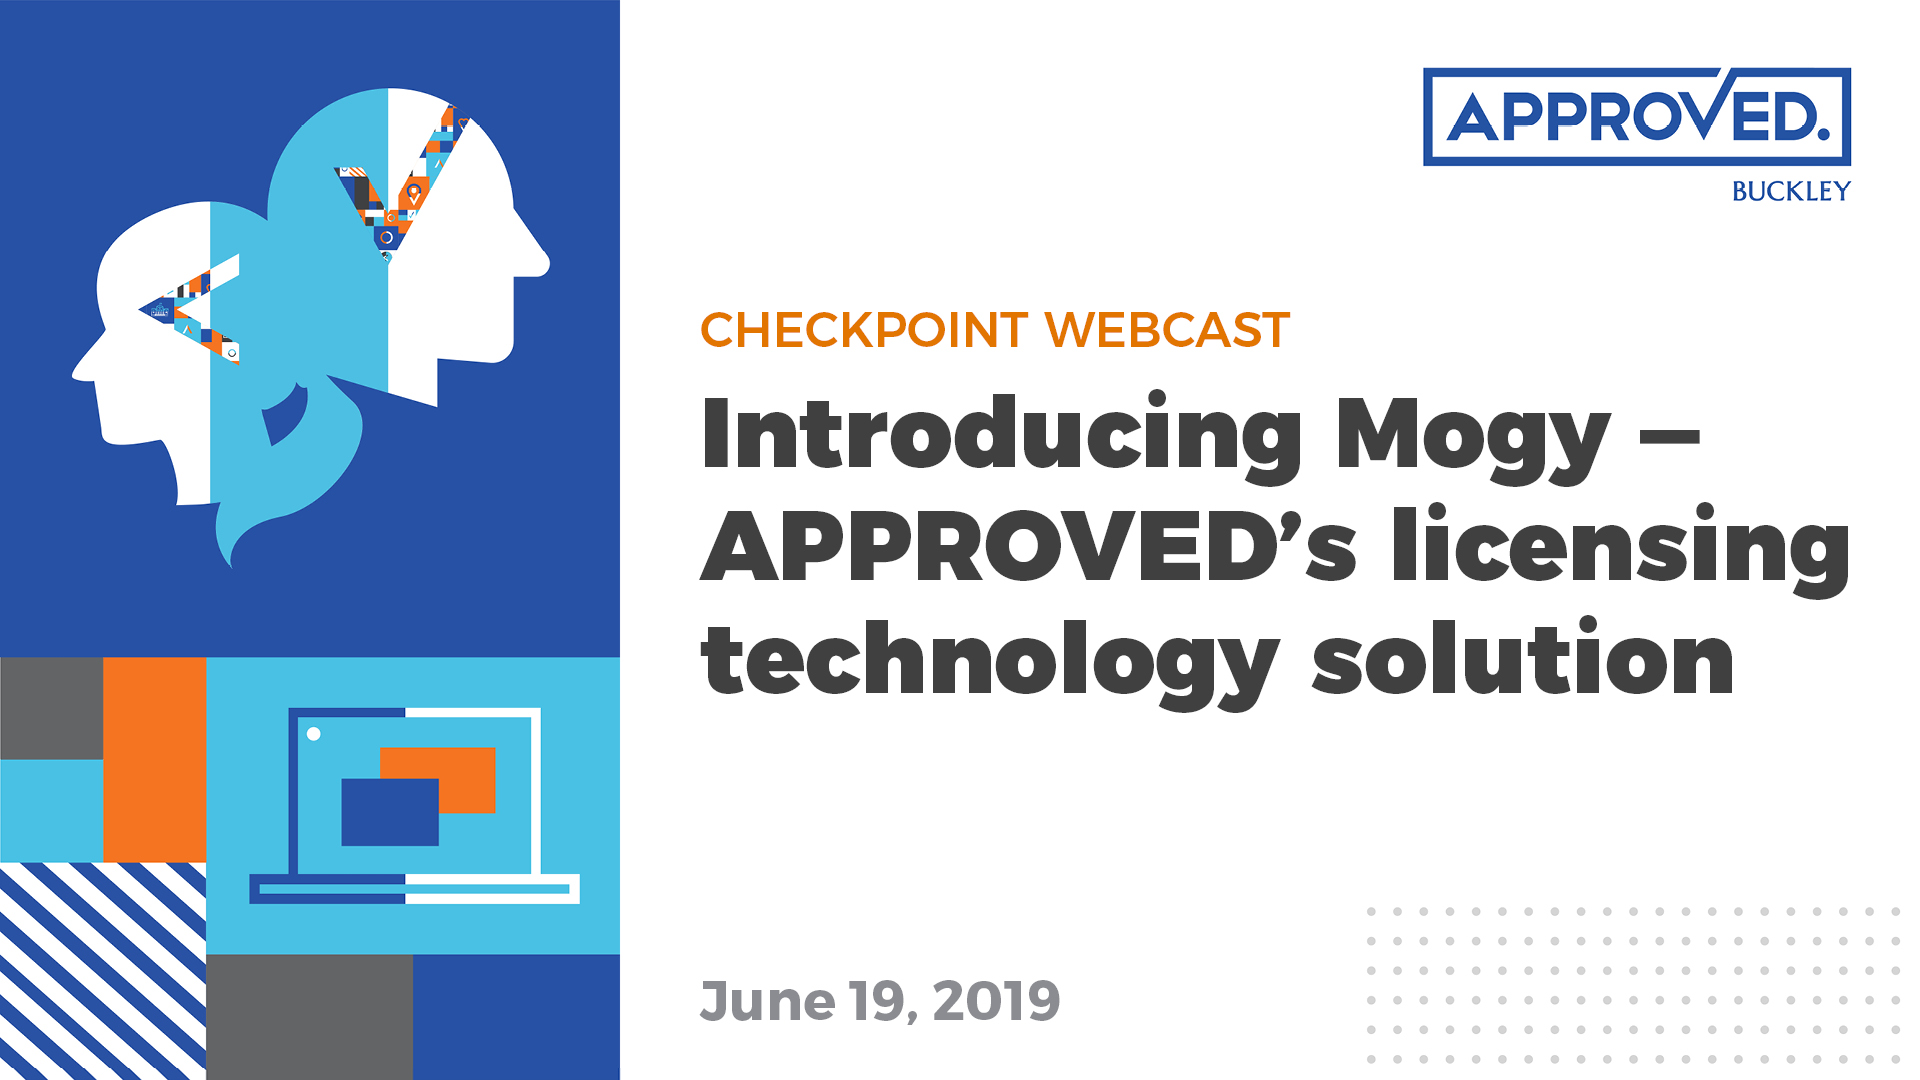 Introducing Mogy — APPROVED's licensing technology solution | APPROVED Checkpoint Webcast